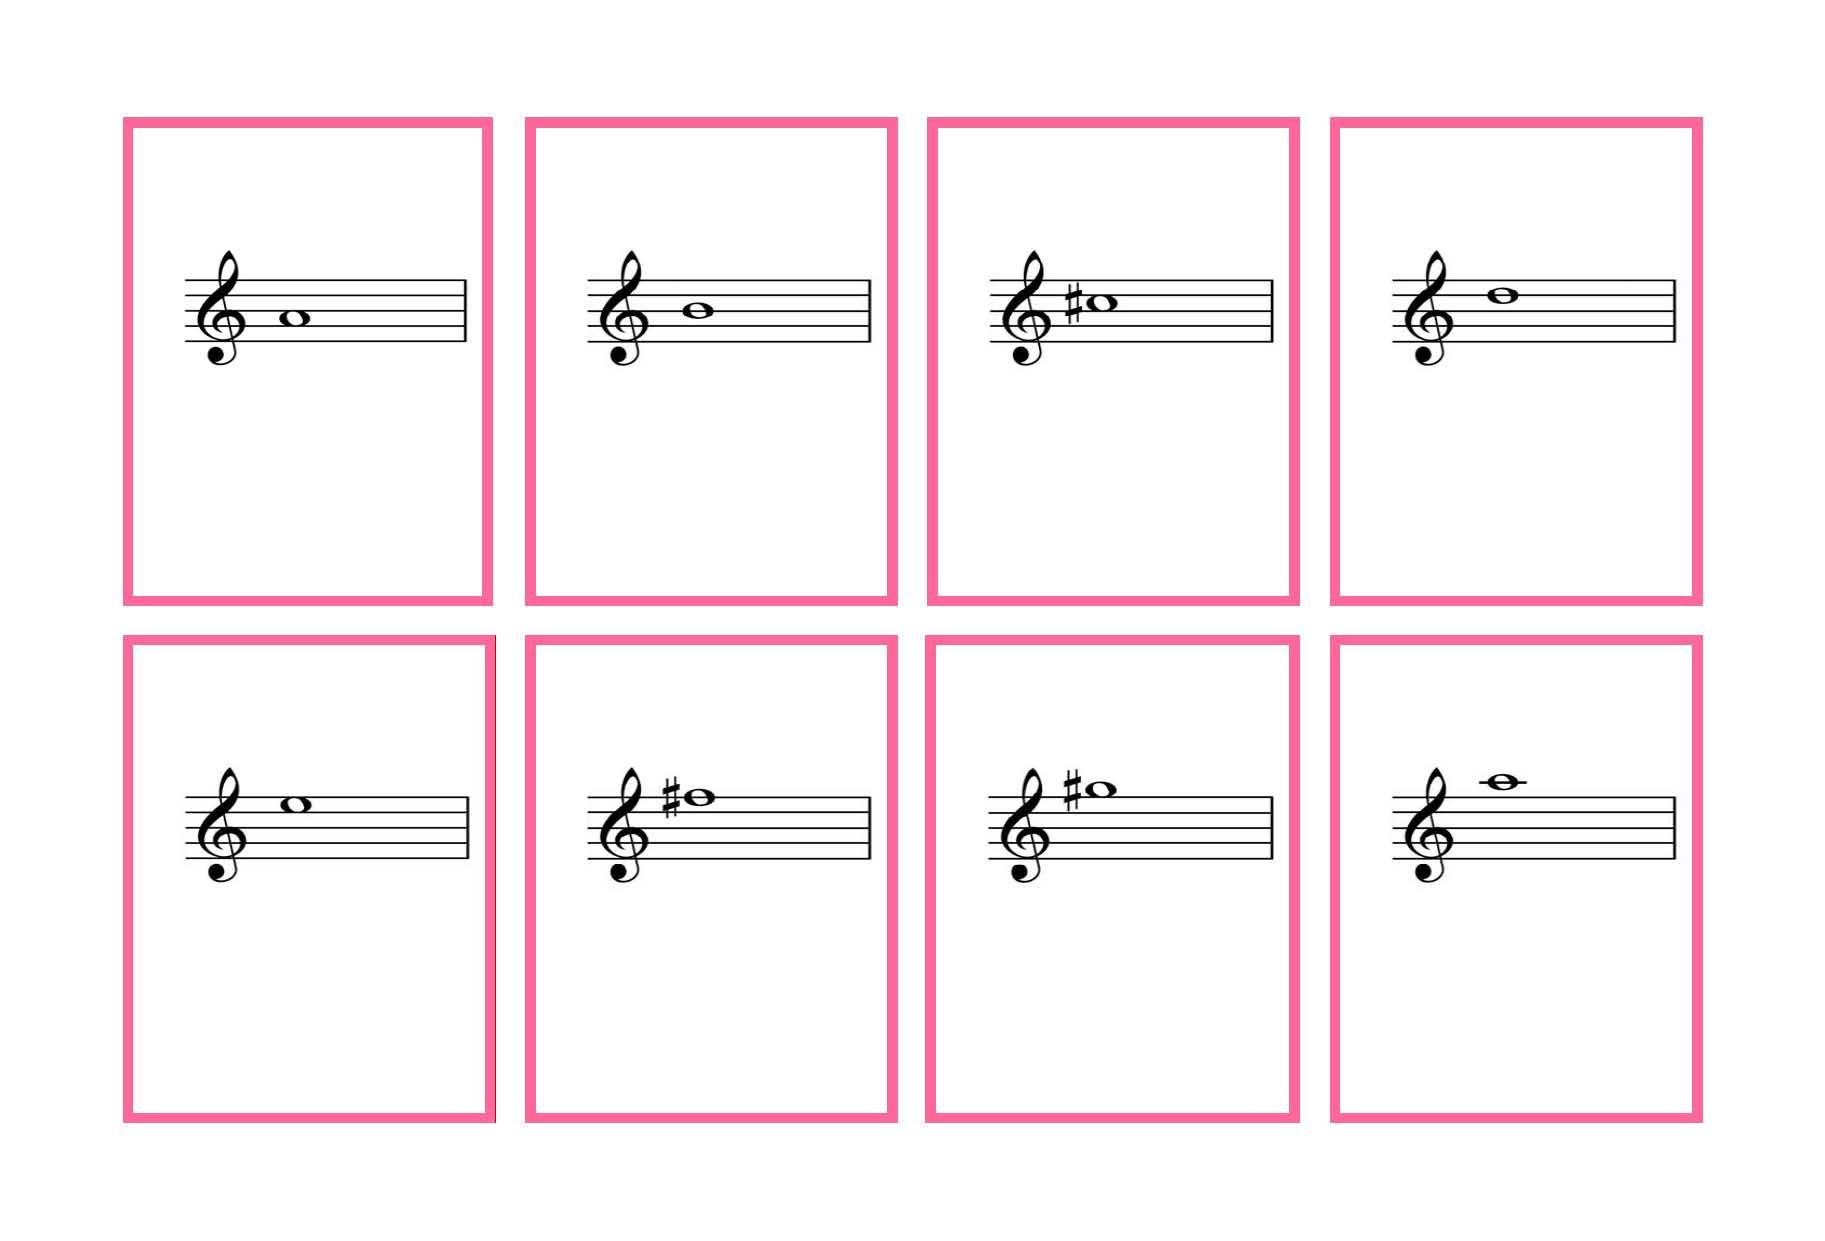 Music Note Flashcards Treble Clef Pictures